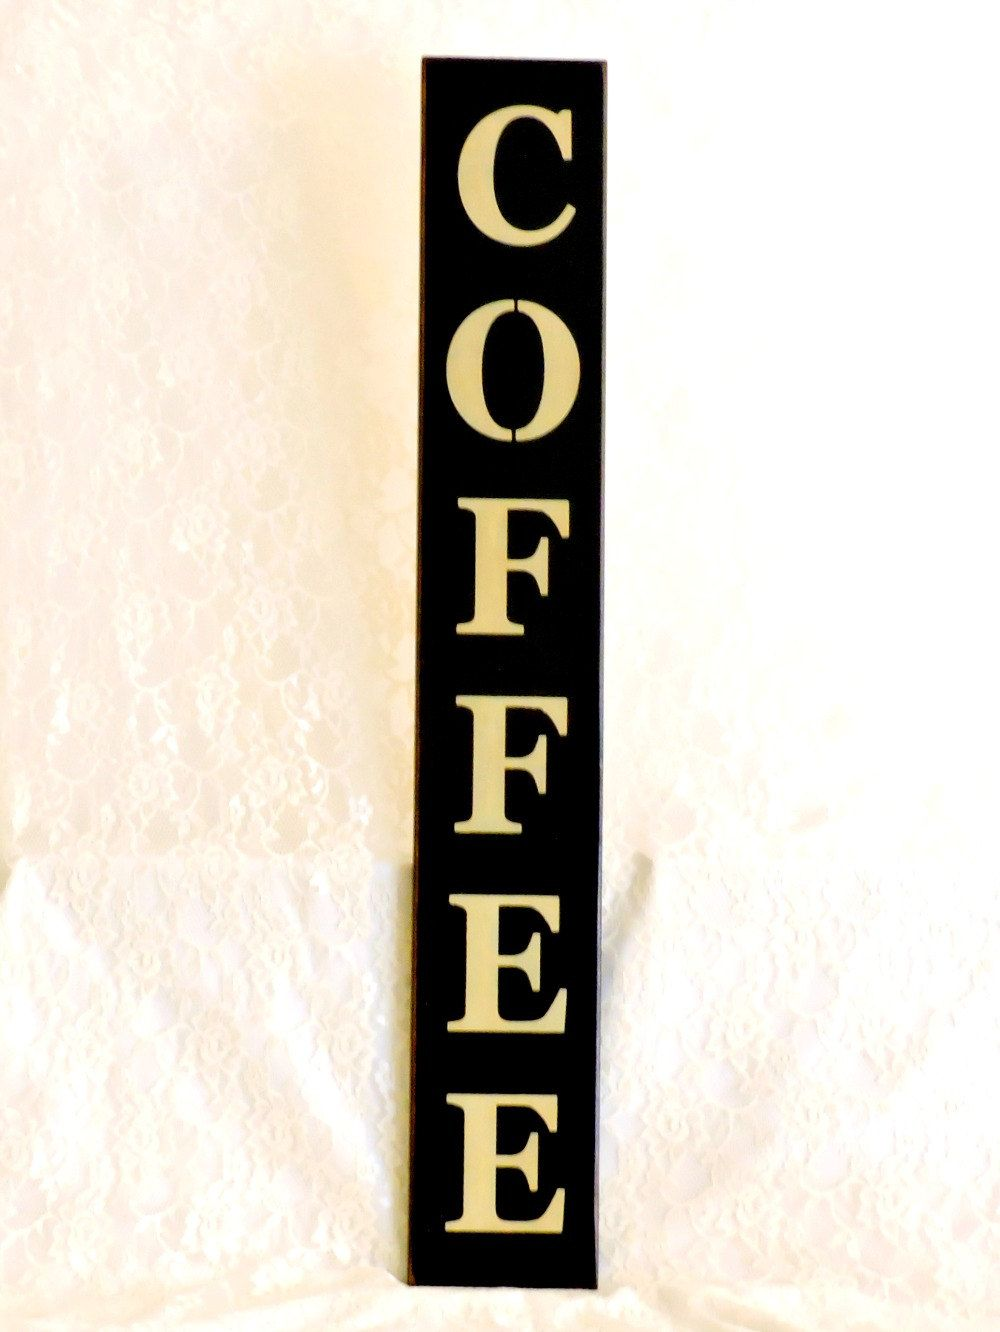 Wall Sign Decor Beauteous Coffee  Primitive Country Painted Wall Sign Vertical Sign 2018